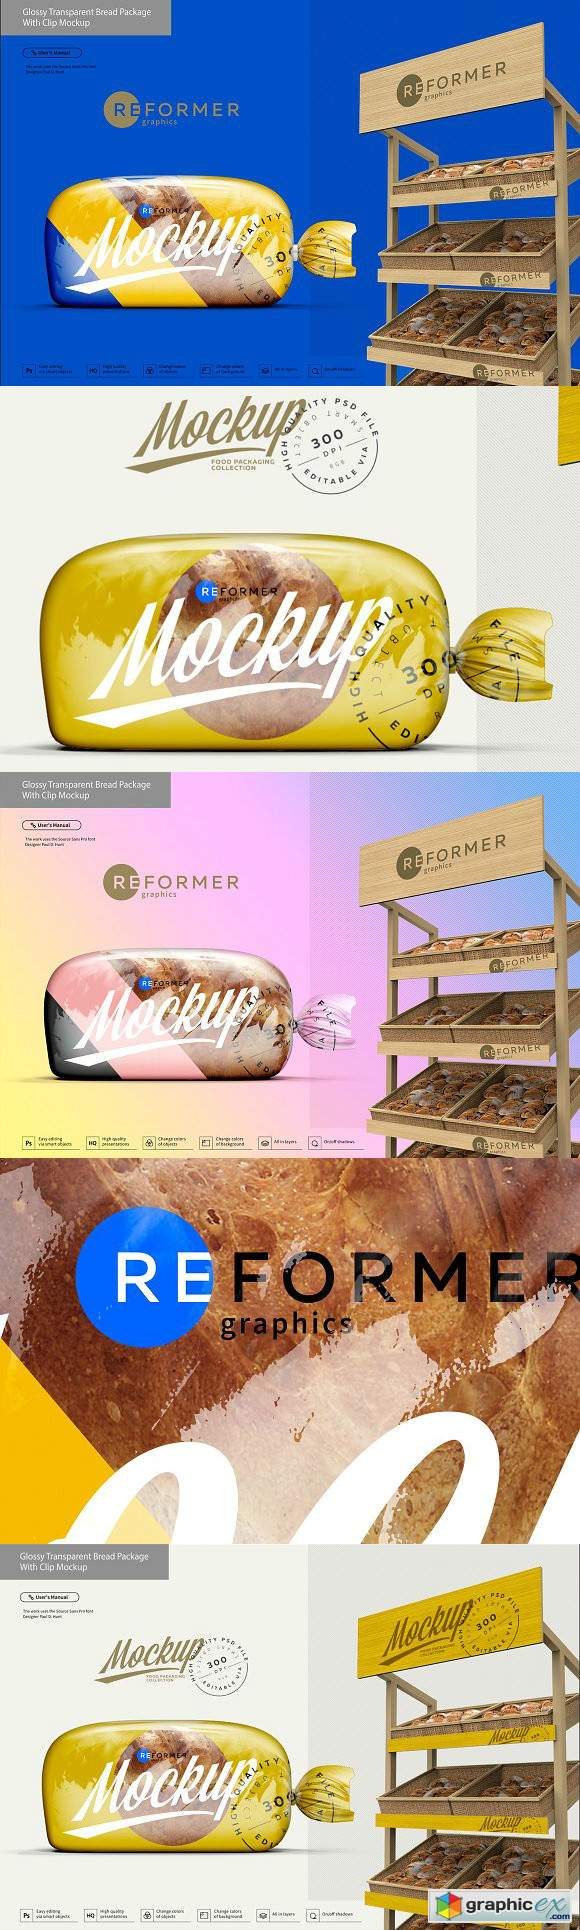 Glossy Transparent Bread Package